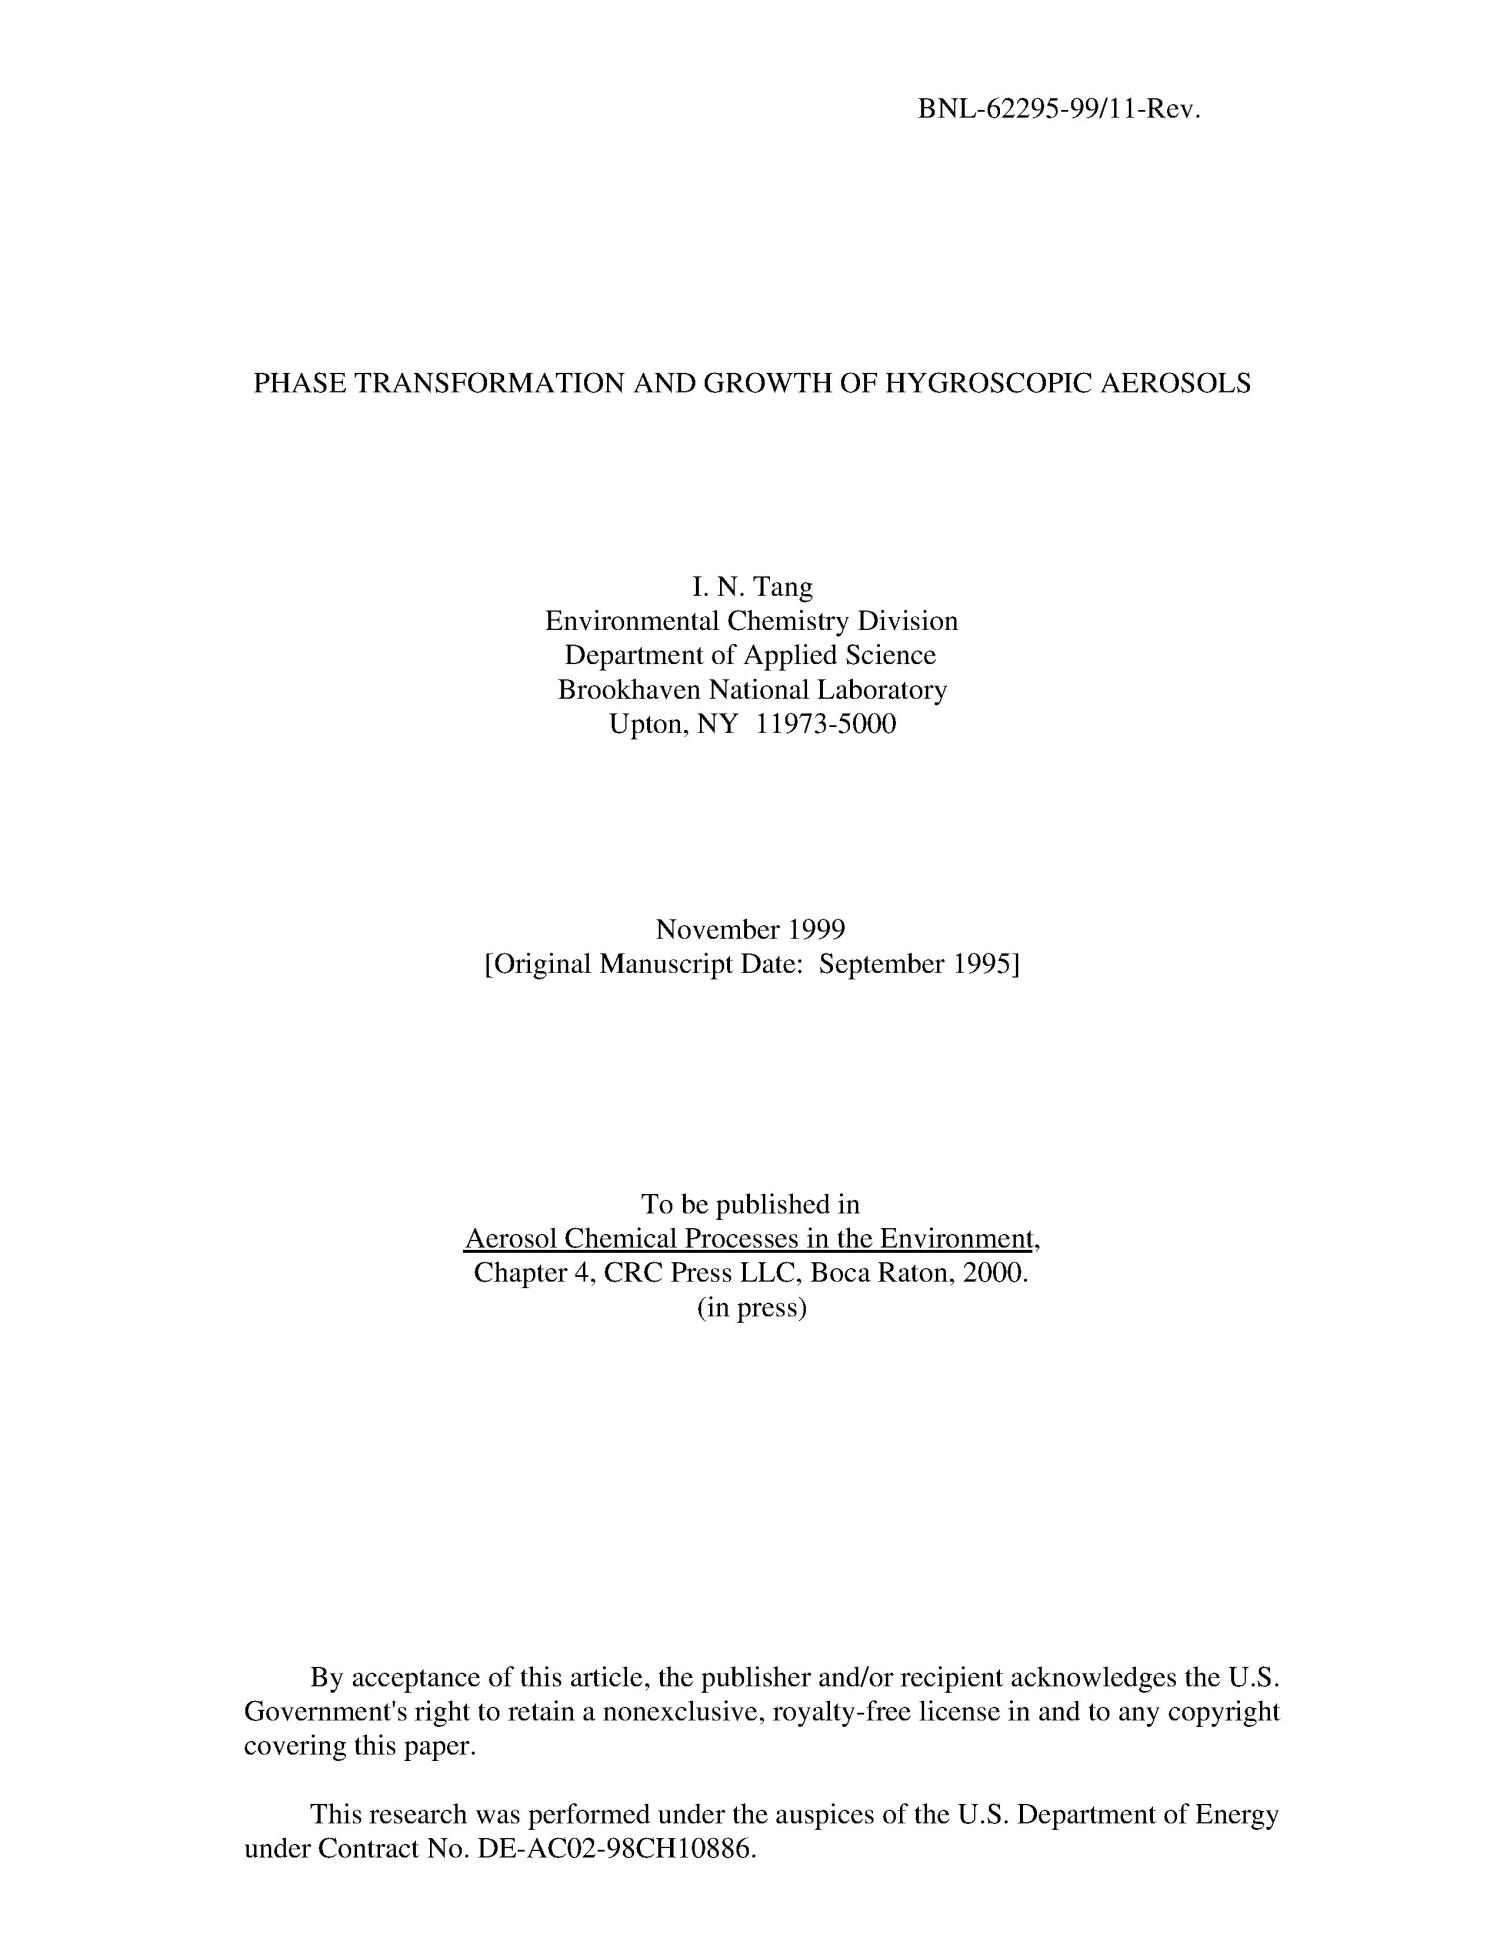 Phase transformation and growth of hygroscopic aerosols                                                                                                      [Sequence #]: 1 of 21